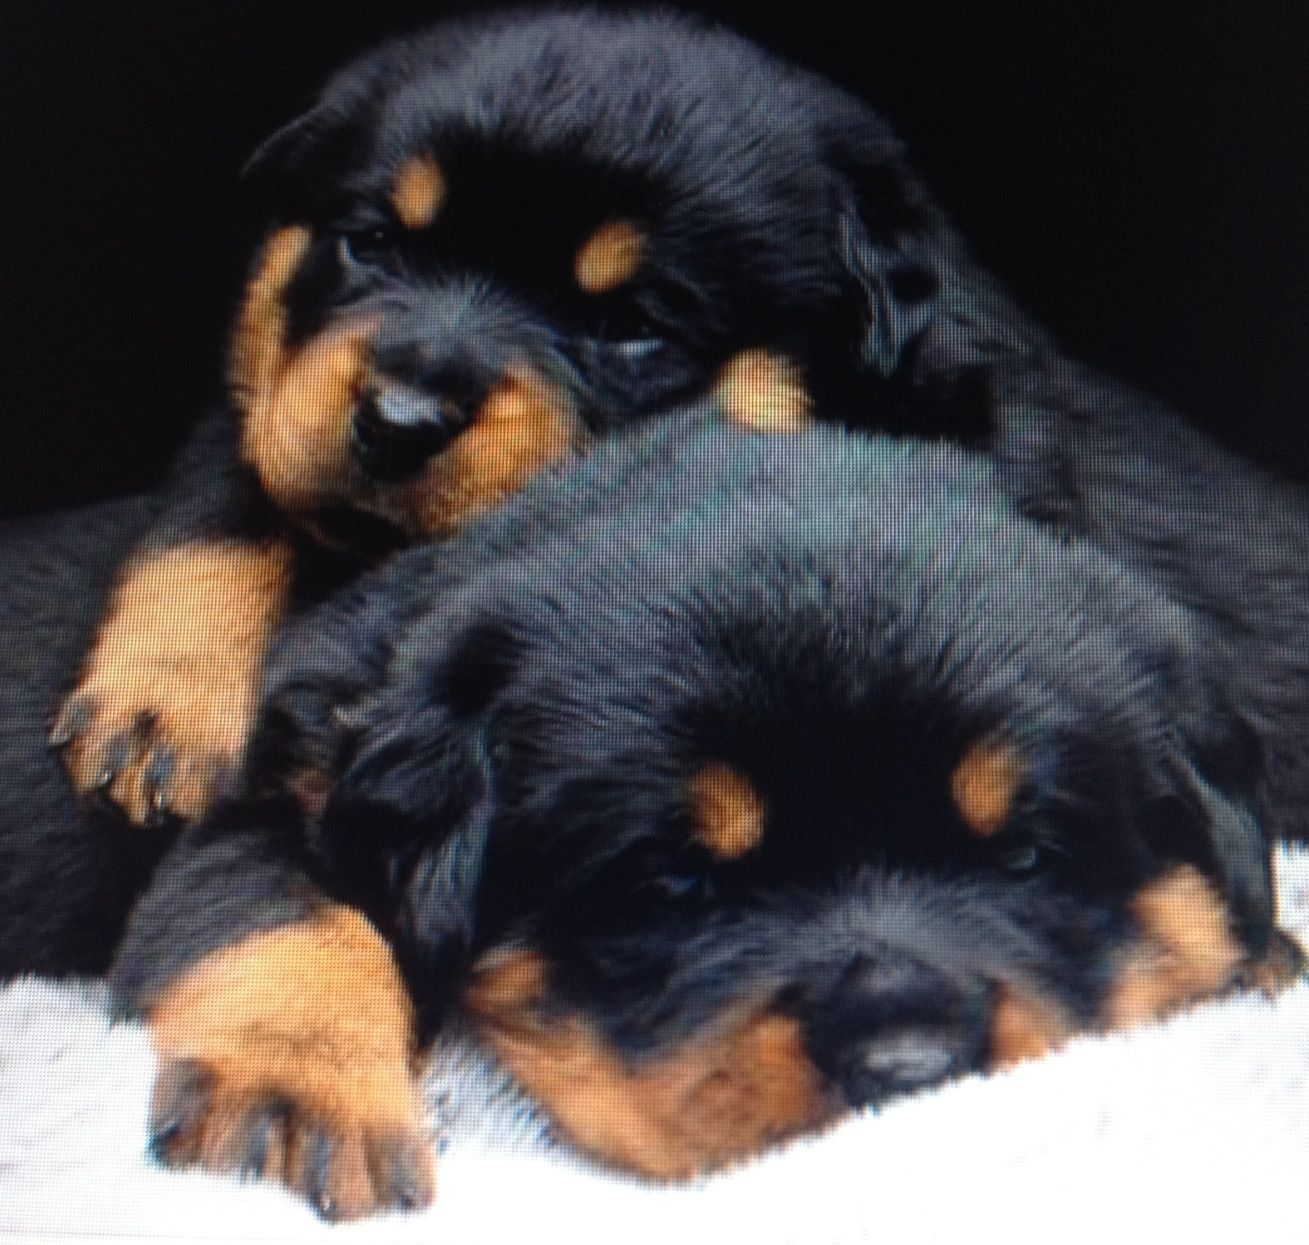 Rottweiler Puppies I Want Rottweiler Rottweiler Dog Puppies